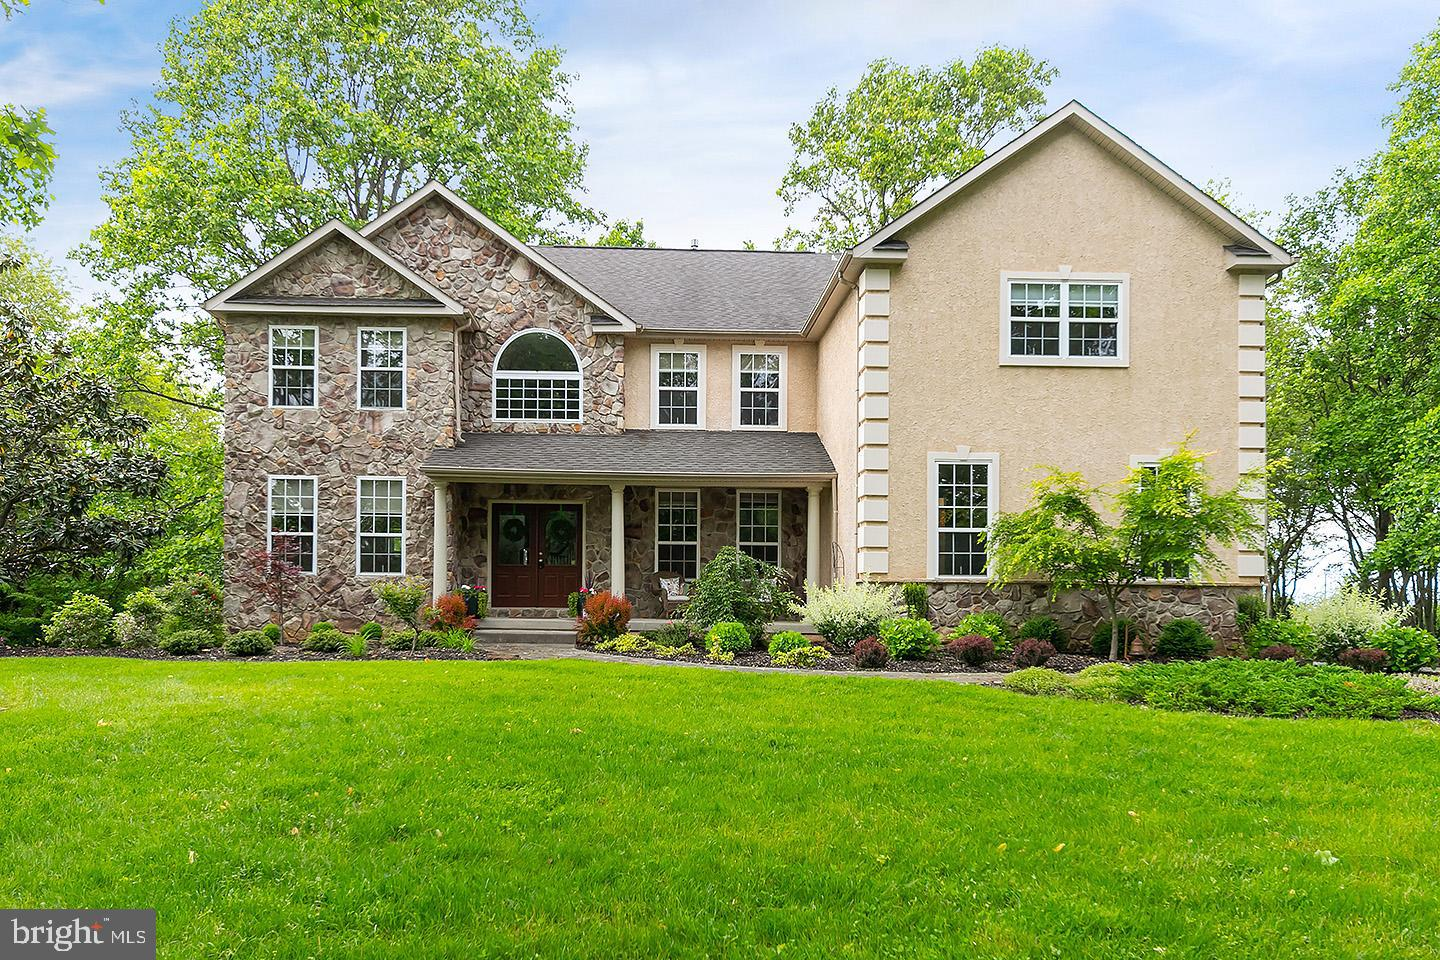 142 ERICA COURT, WOOLWICH TOWNSHIP, NJ 08085